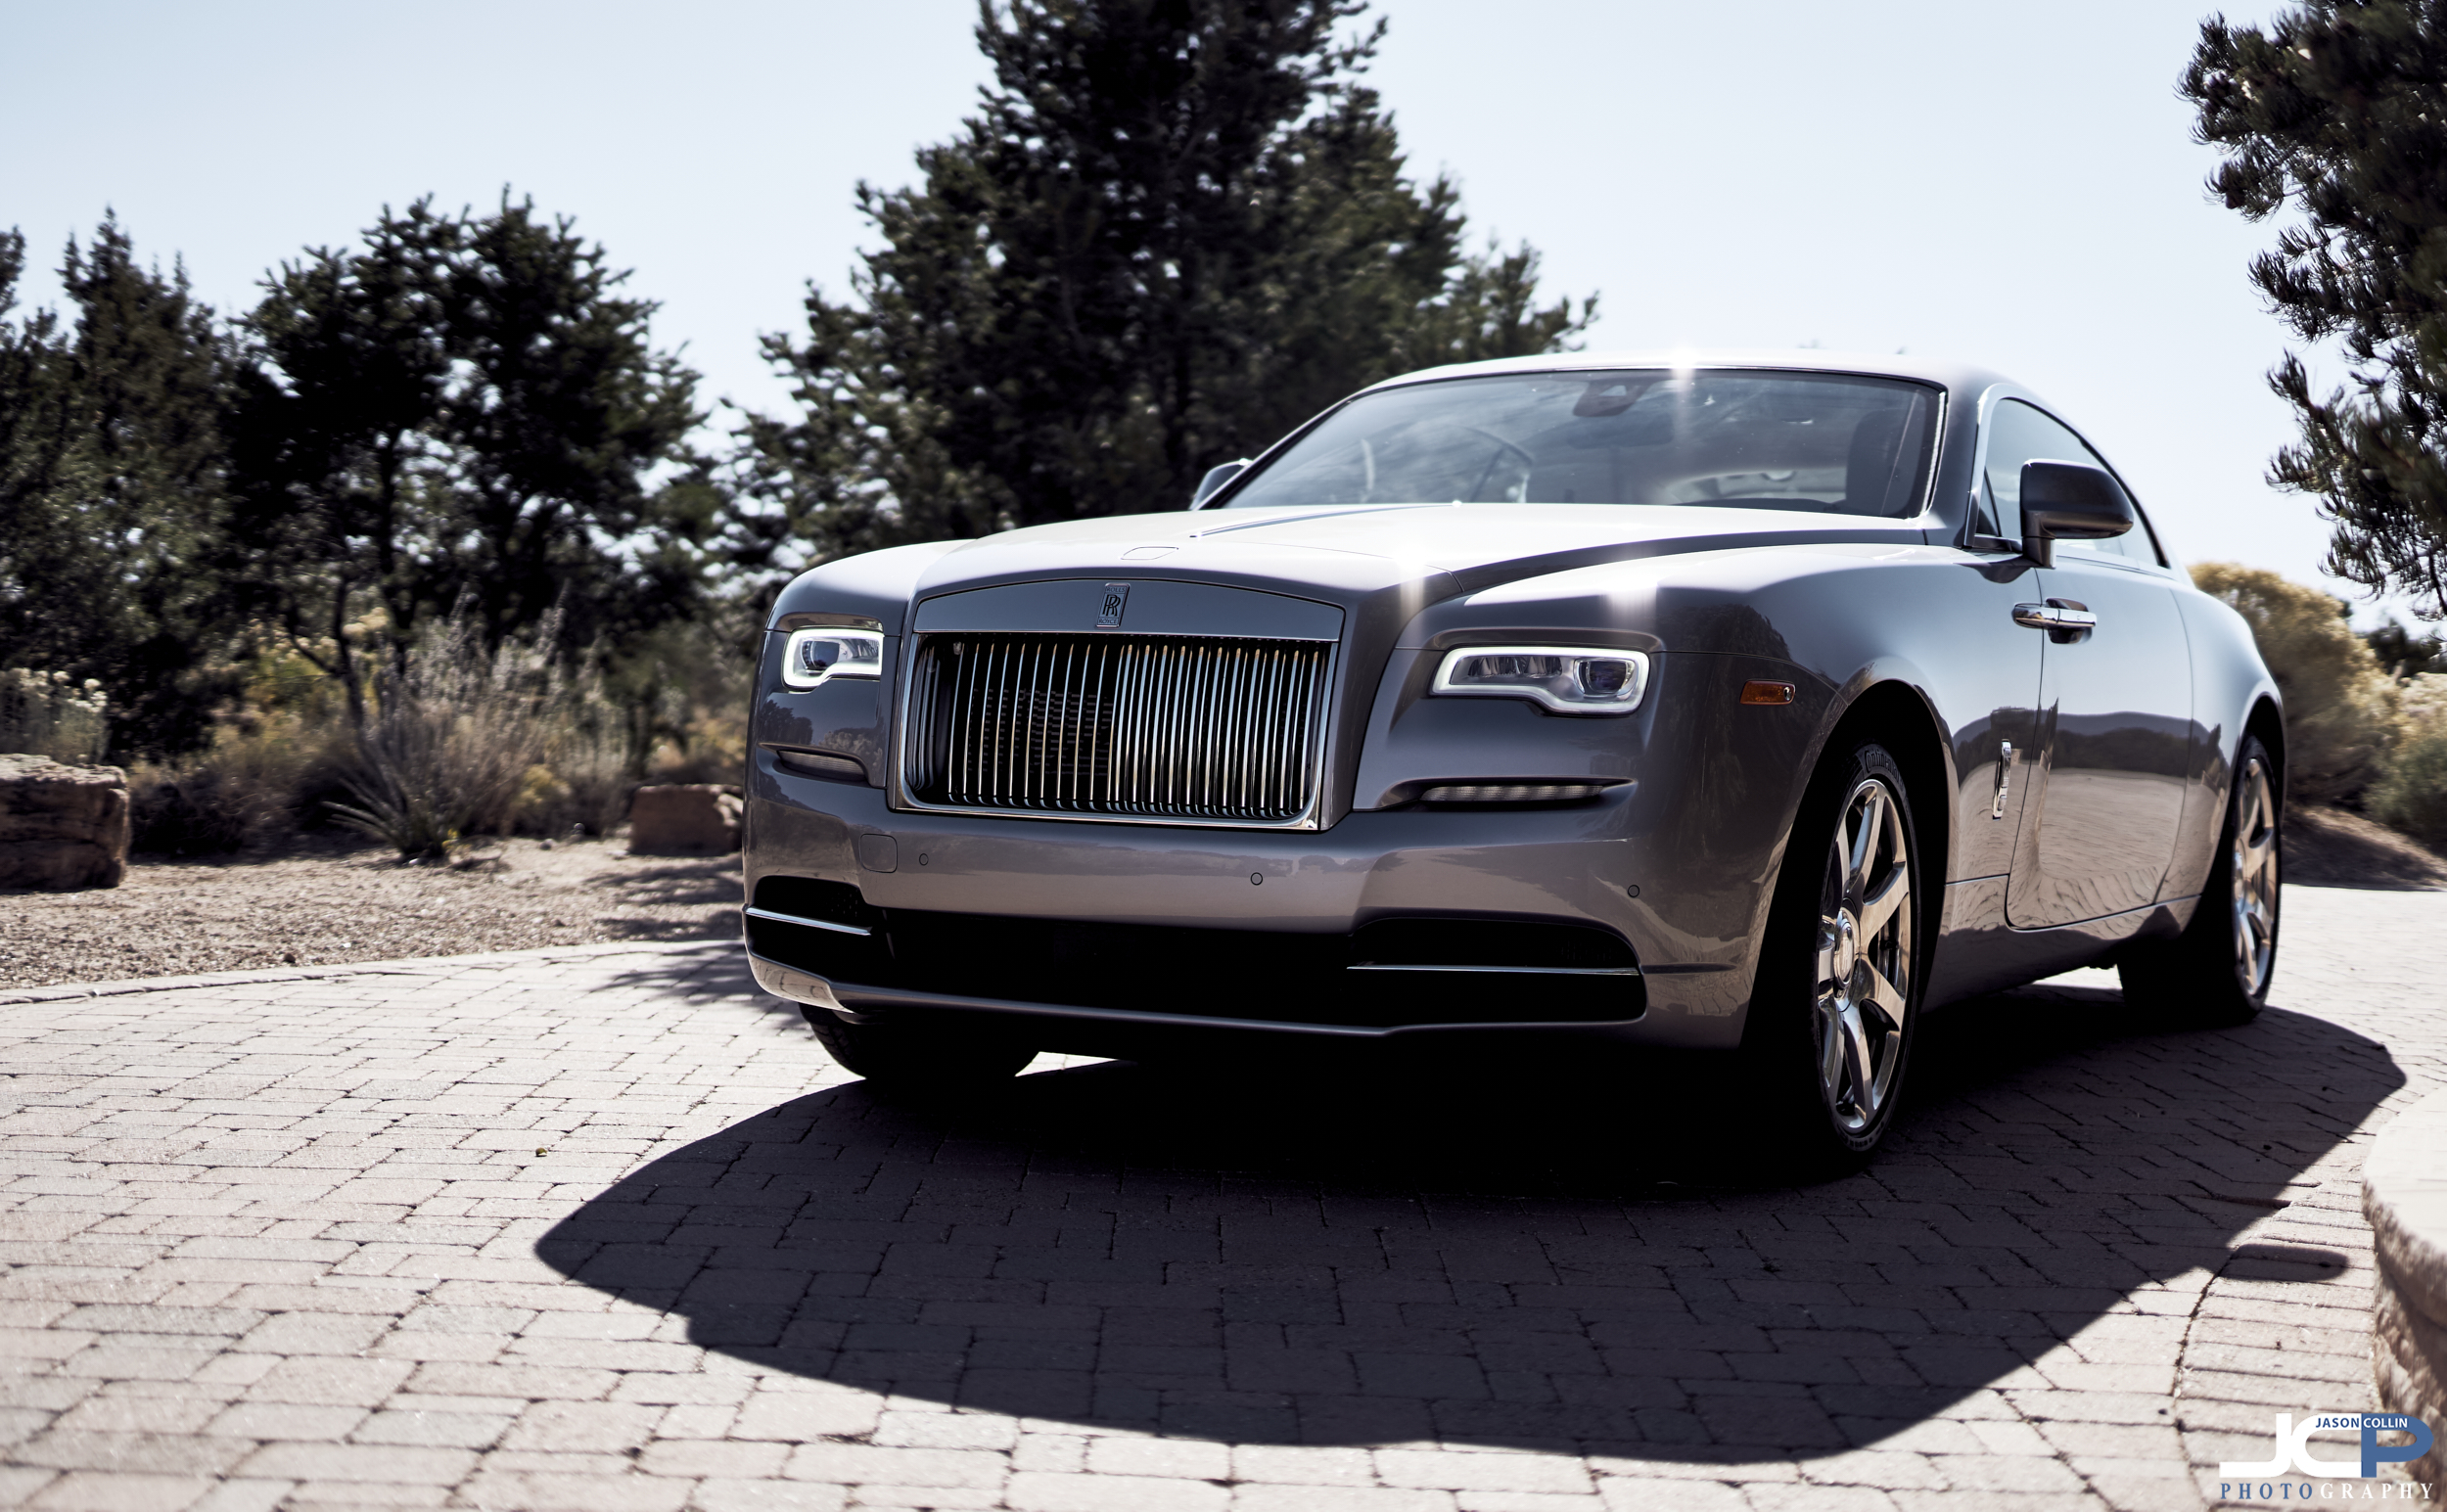 The stunning Rolls-Royce Wraith photographed in Santa Fe, New Mexico